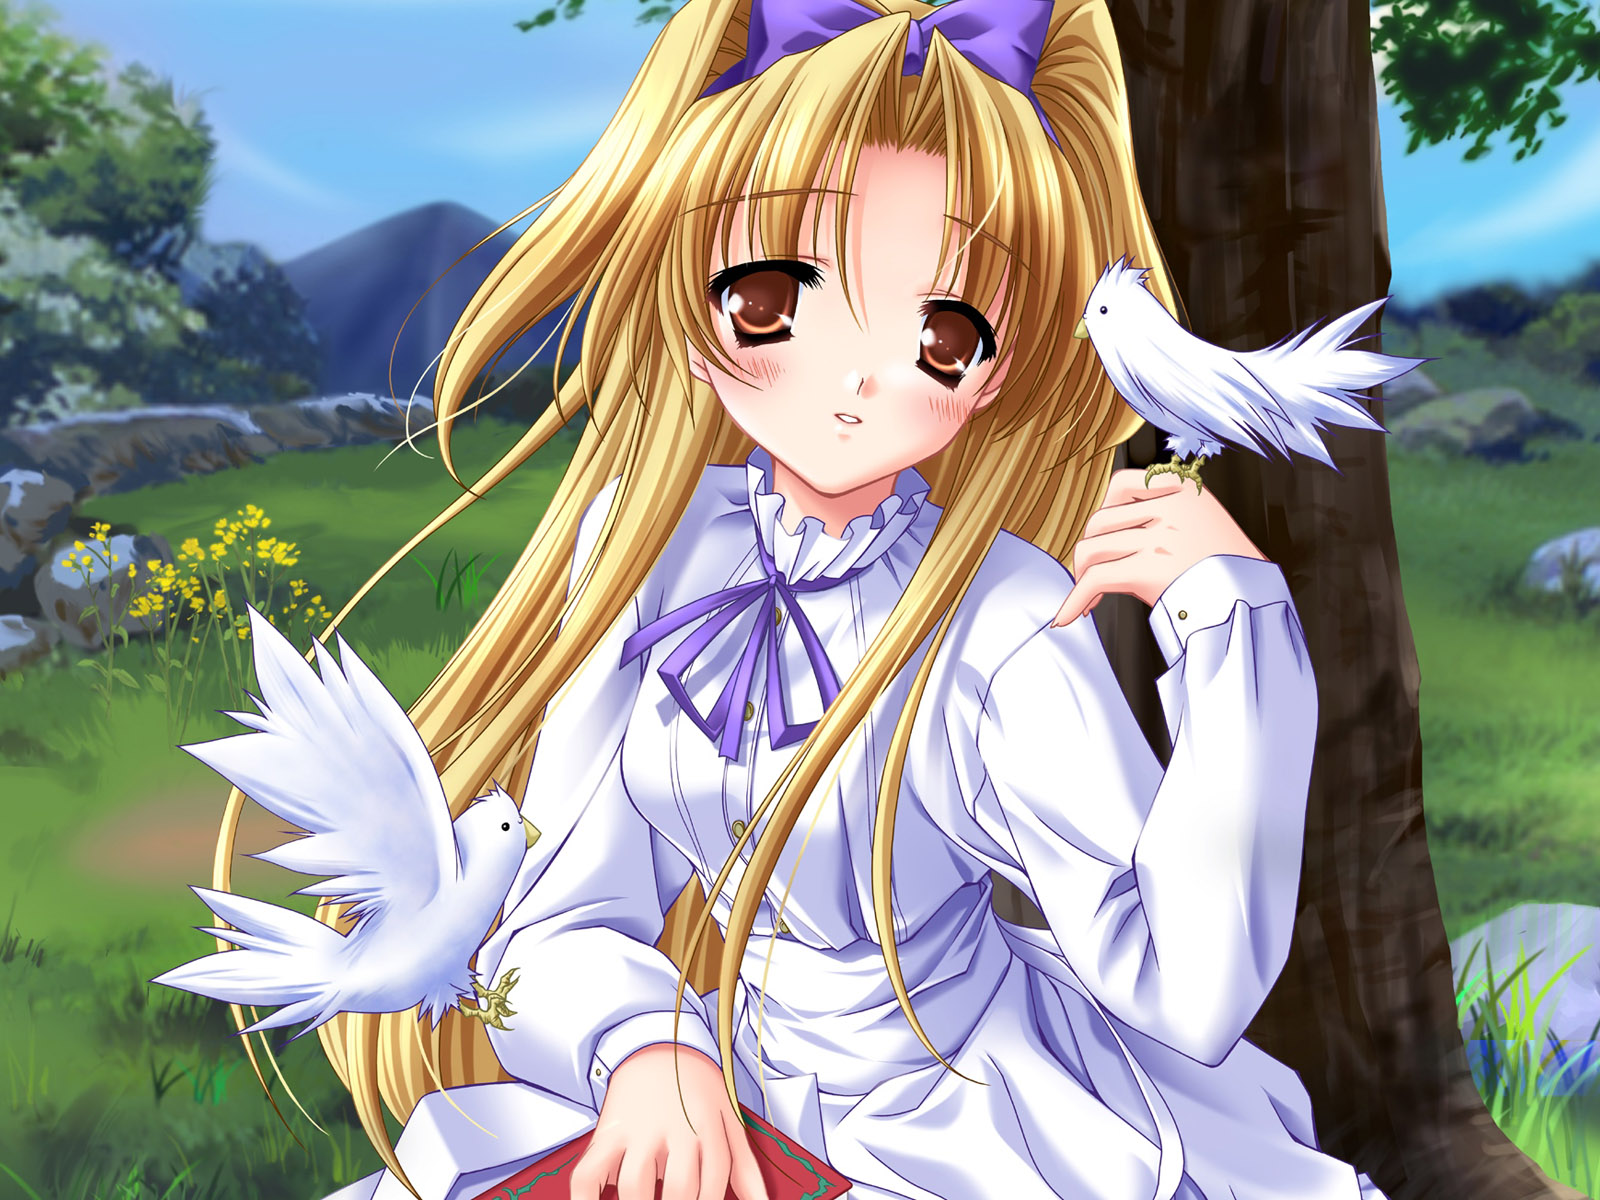 Cooly Anime Girls High Resolution Wallpapers Imagez Only